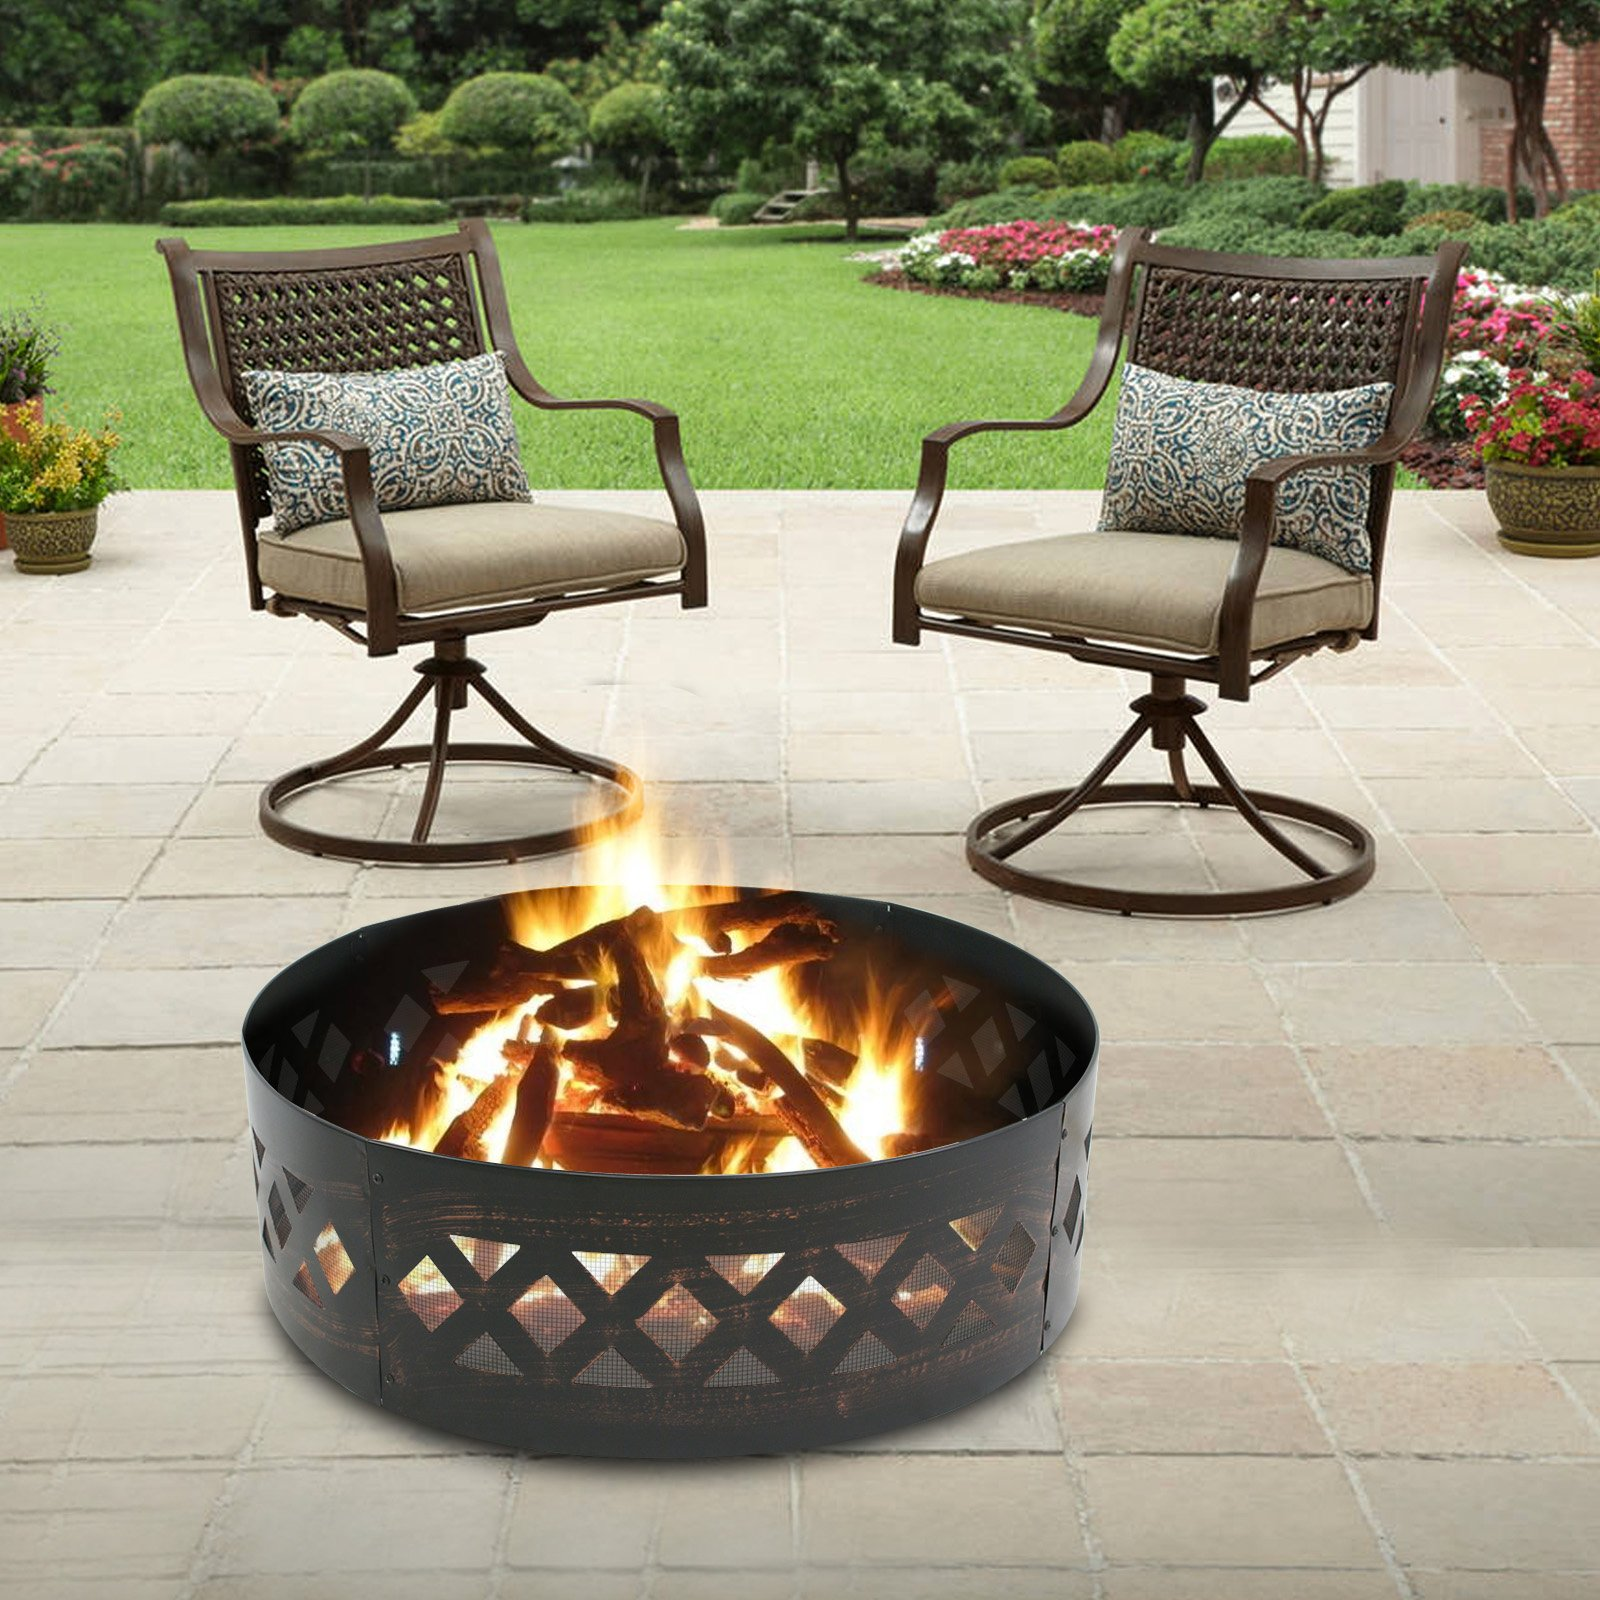 LEMY 37'' Heavy Duty Fire Ring Wilderness Fire Pit Ring Campfire Ring Steel Patio Camping Outdoors by LEMY (Image #6)